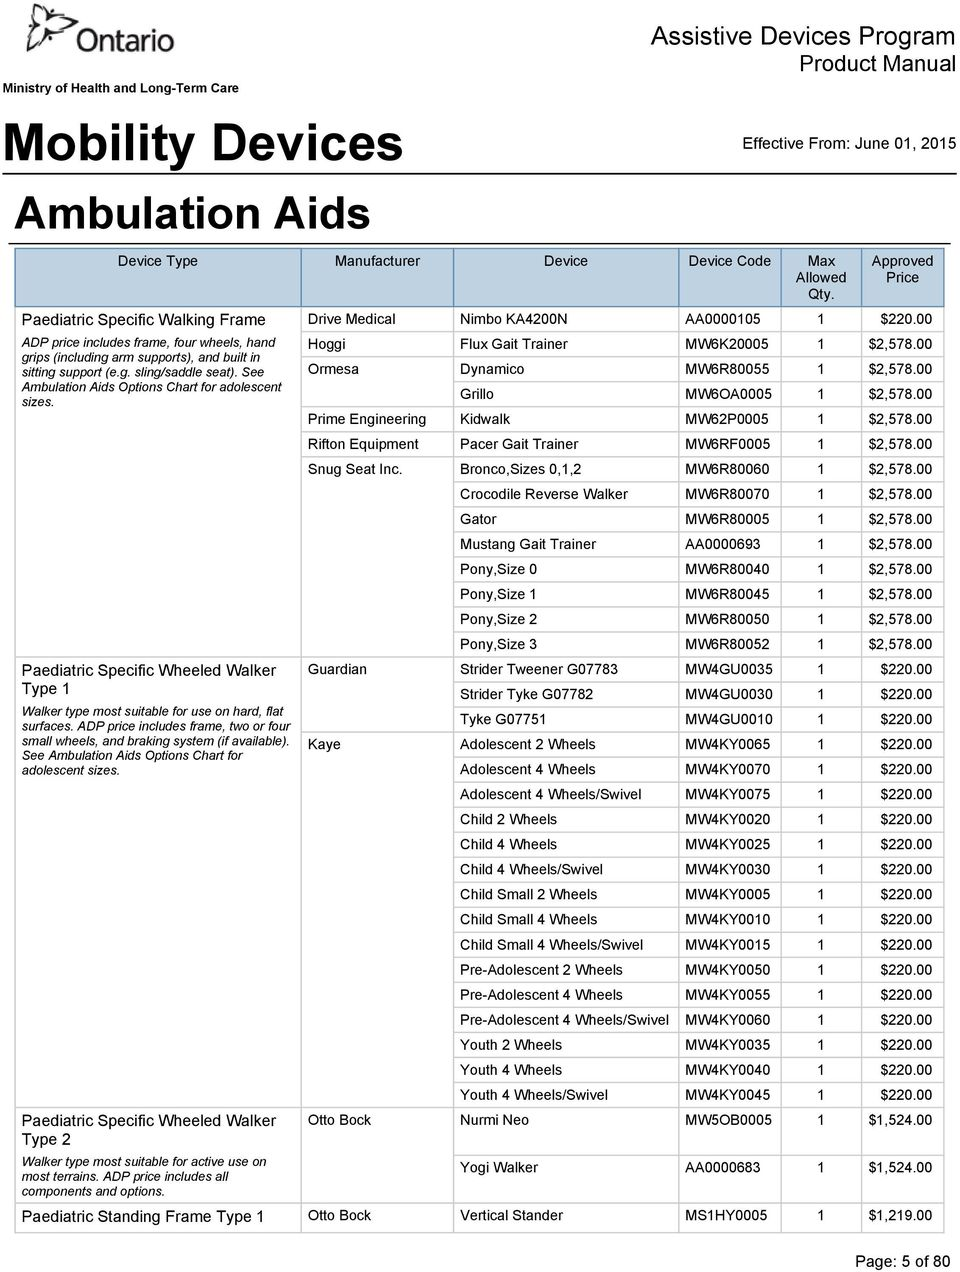 ADP price includes frame, two or four small wheels, and braking system (if available). See Ambulation Aids Options Chart for adolescent sizes.